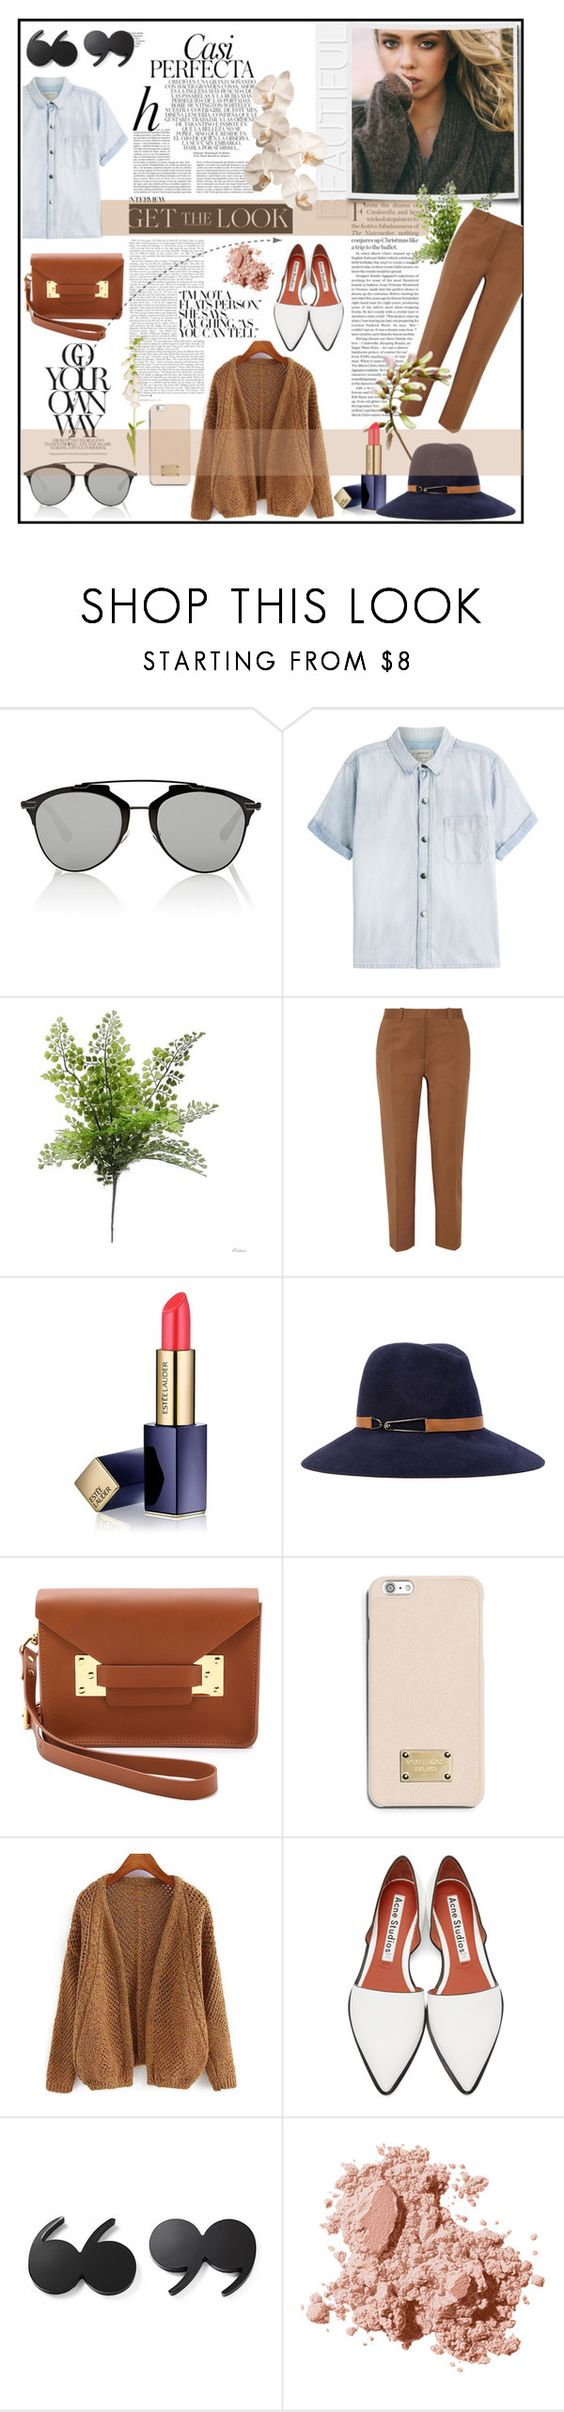 """""""Untitled #203"""" by pink-powder ❤ liked on Polyvore featuring Whiteley, Chanel, Christian Dior, Current/Elliott, 3.1 Phillip Lim, Estée Lauder, Eugenia Kim, Sophie Hulme, MICHAEL Michael Kors and Acne Studios"""